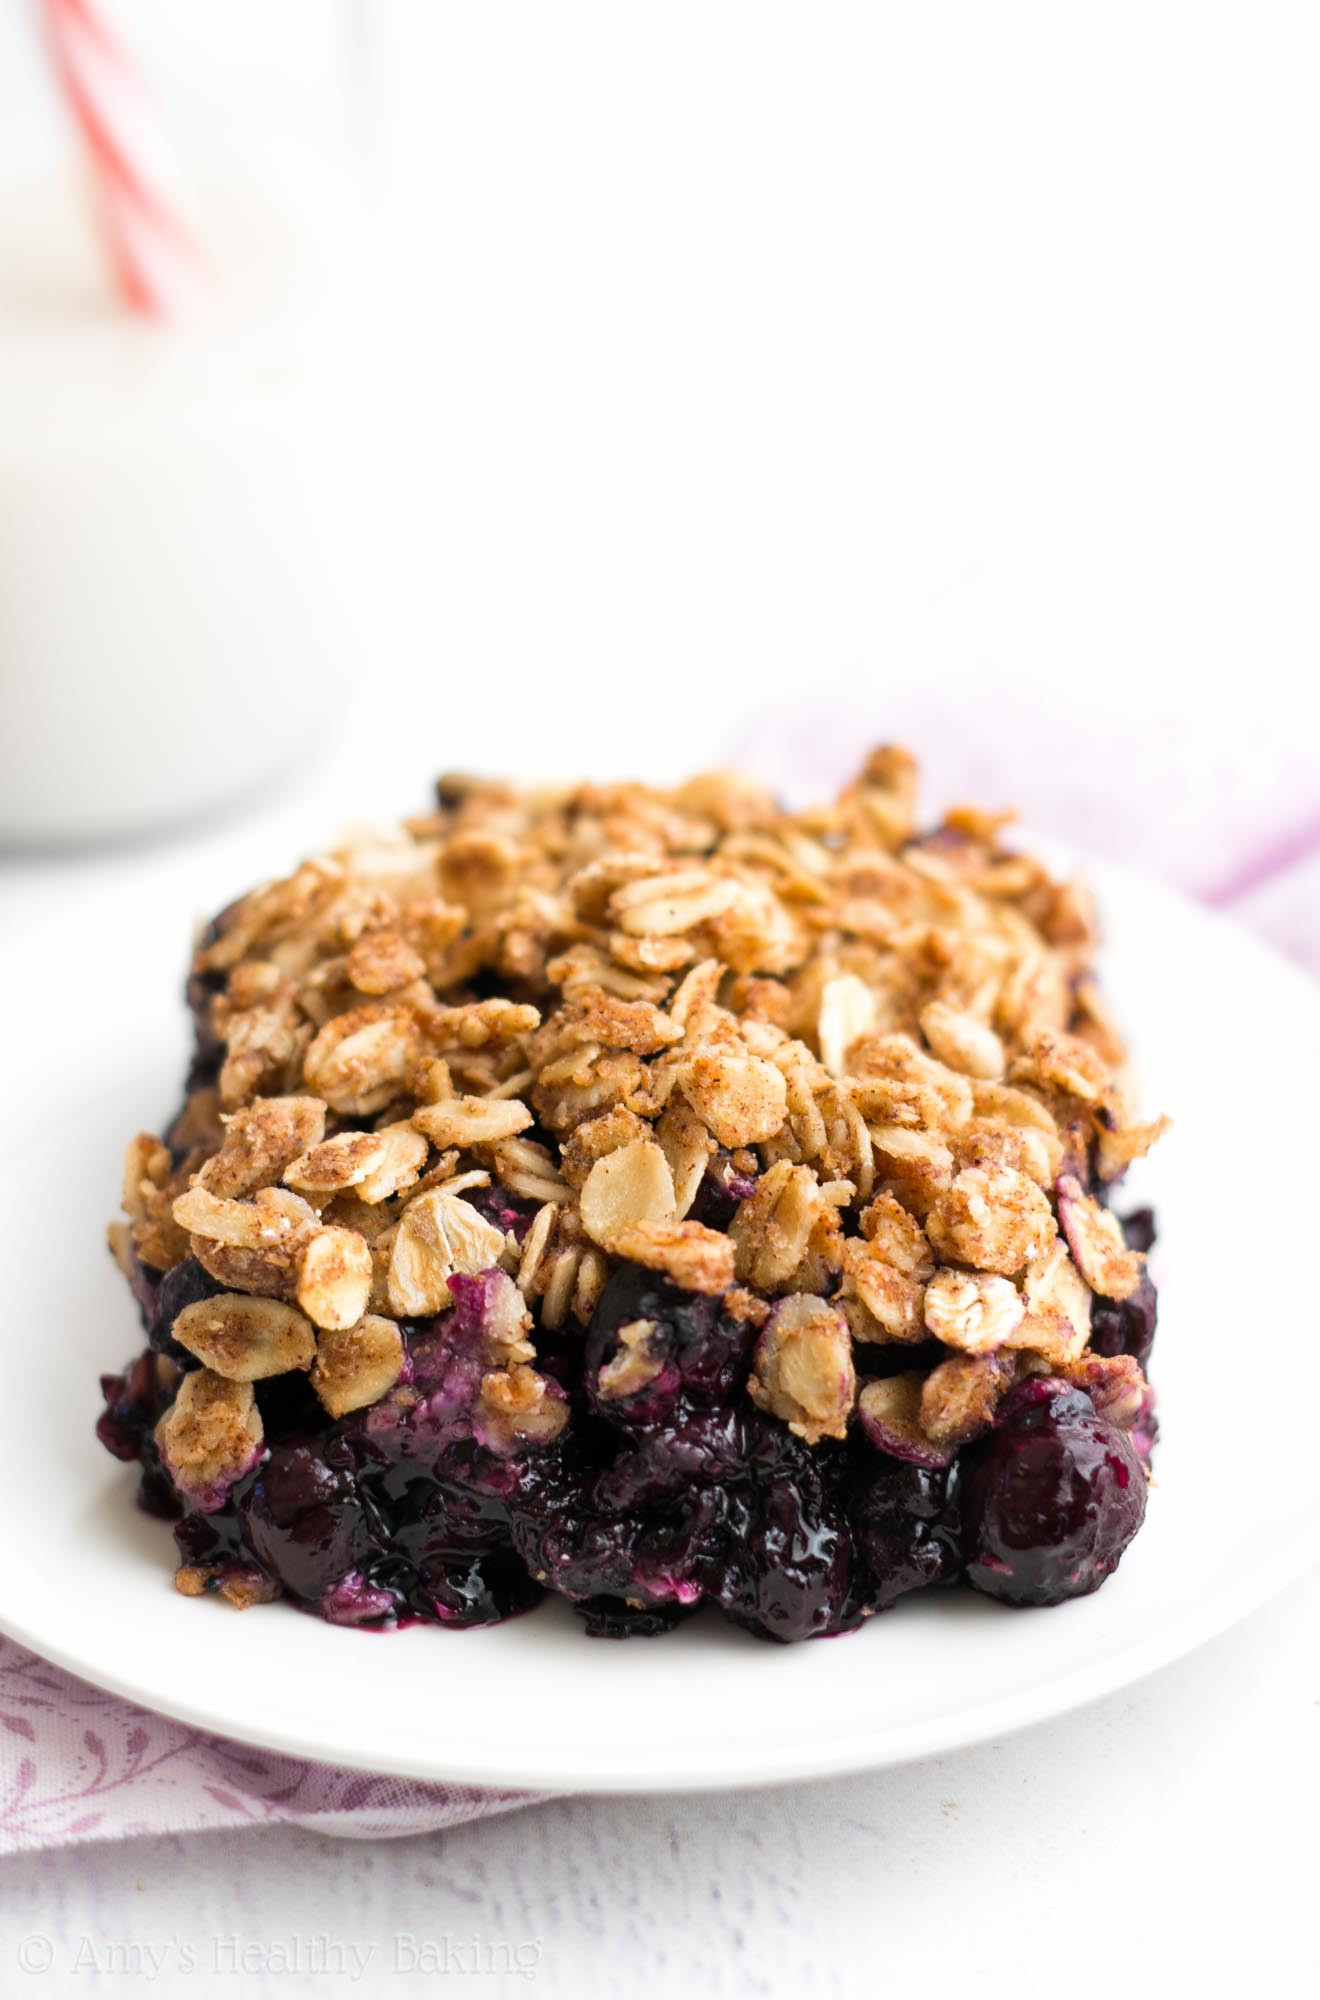 Blueberry Dessert Healthy  The Ultimate Healthy Blueberry Crumble Recipe Video